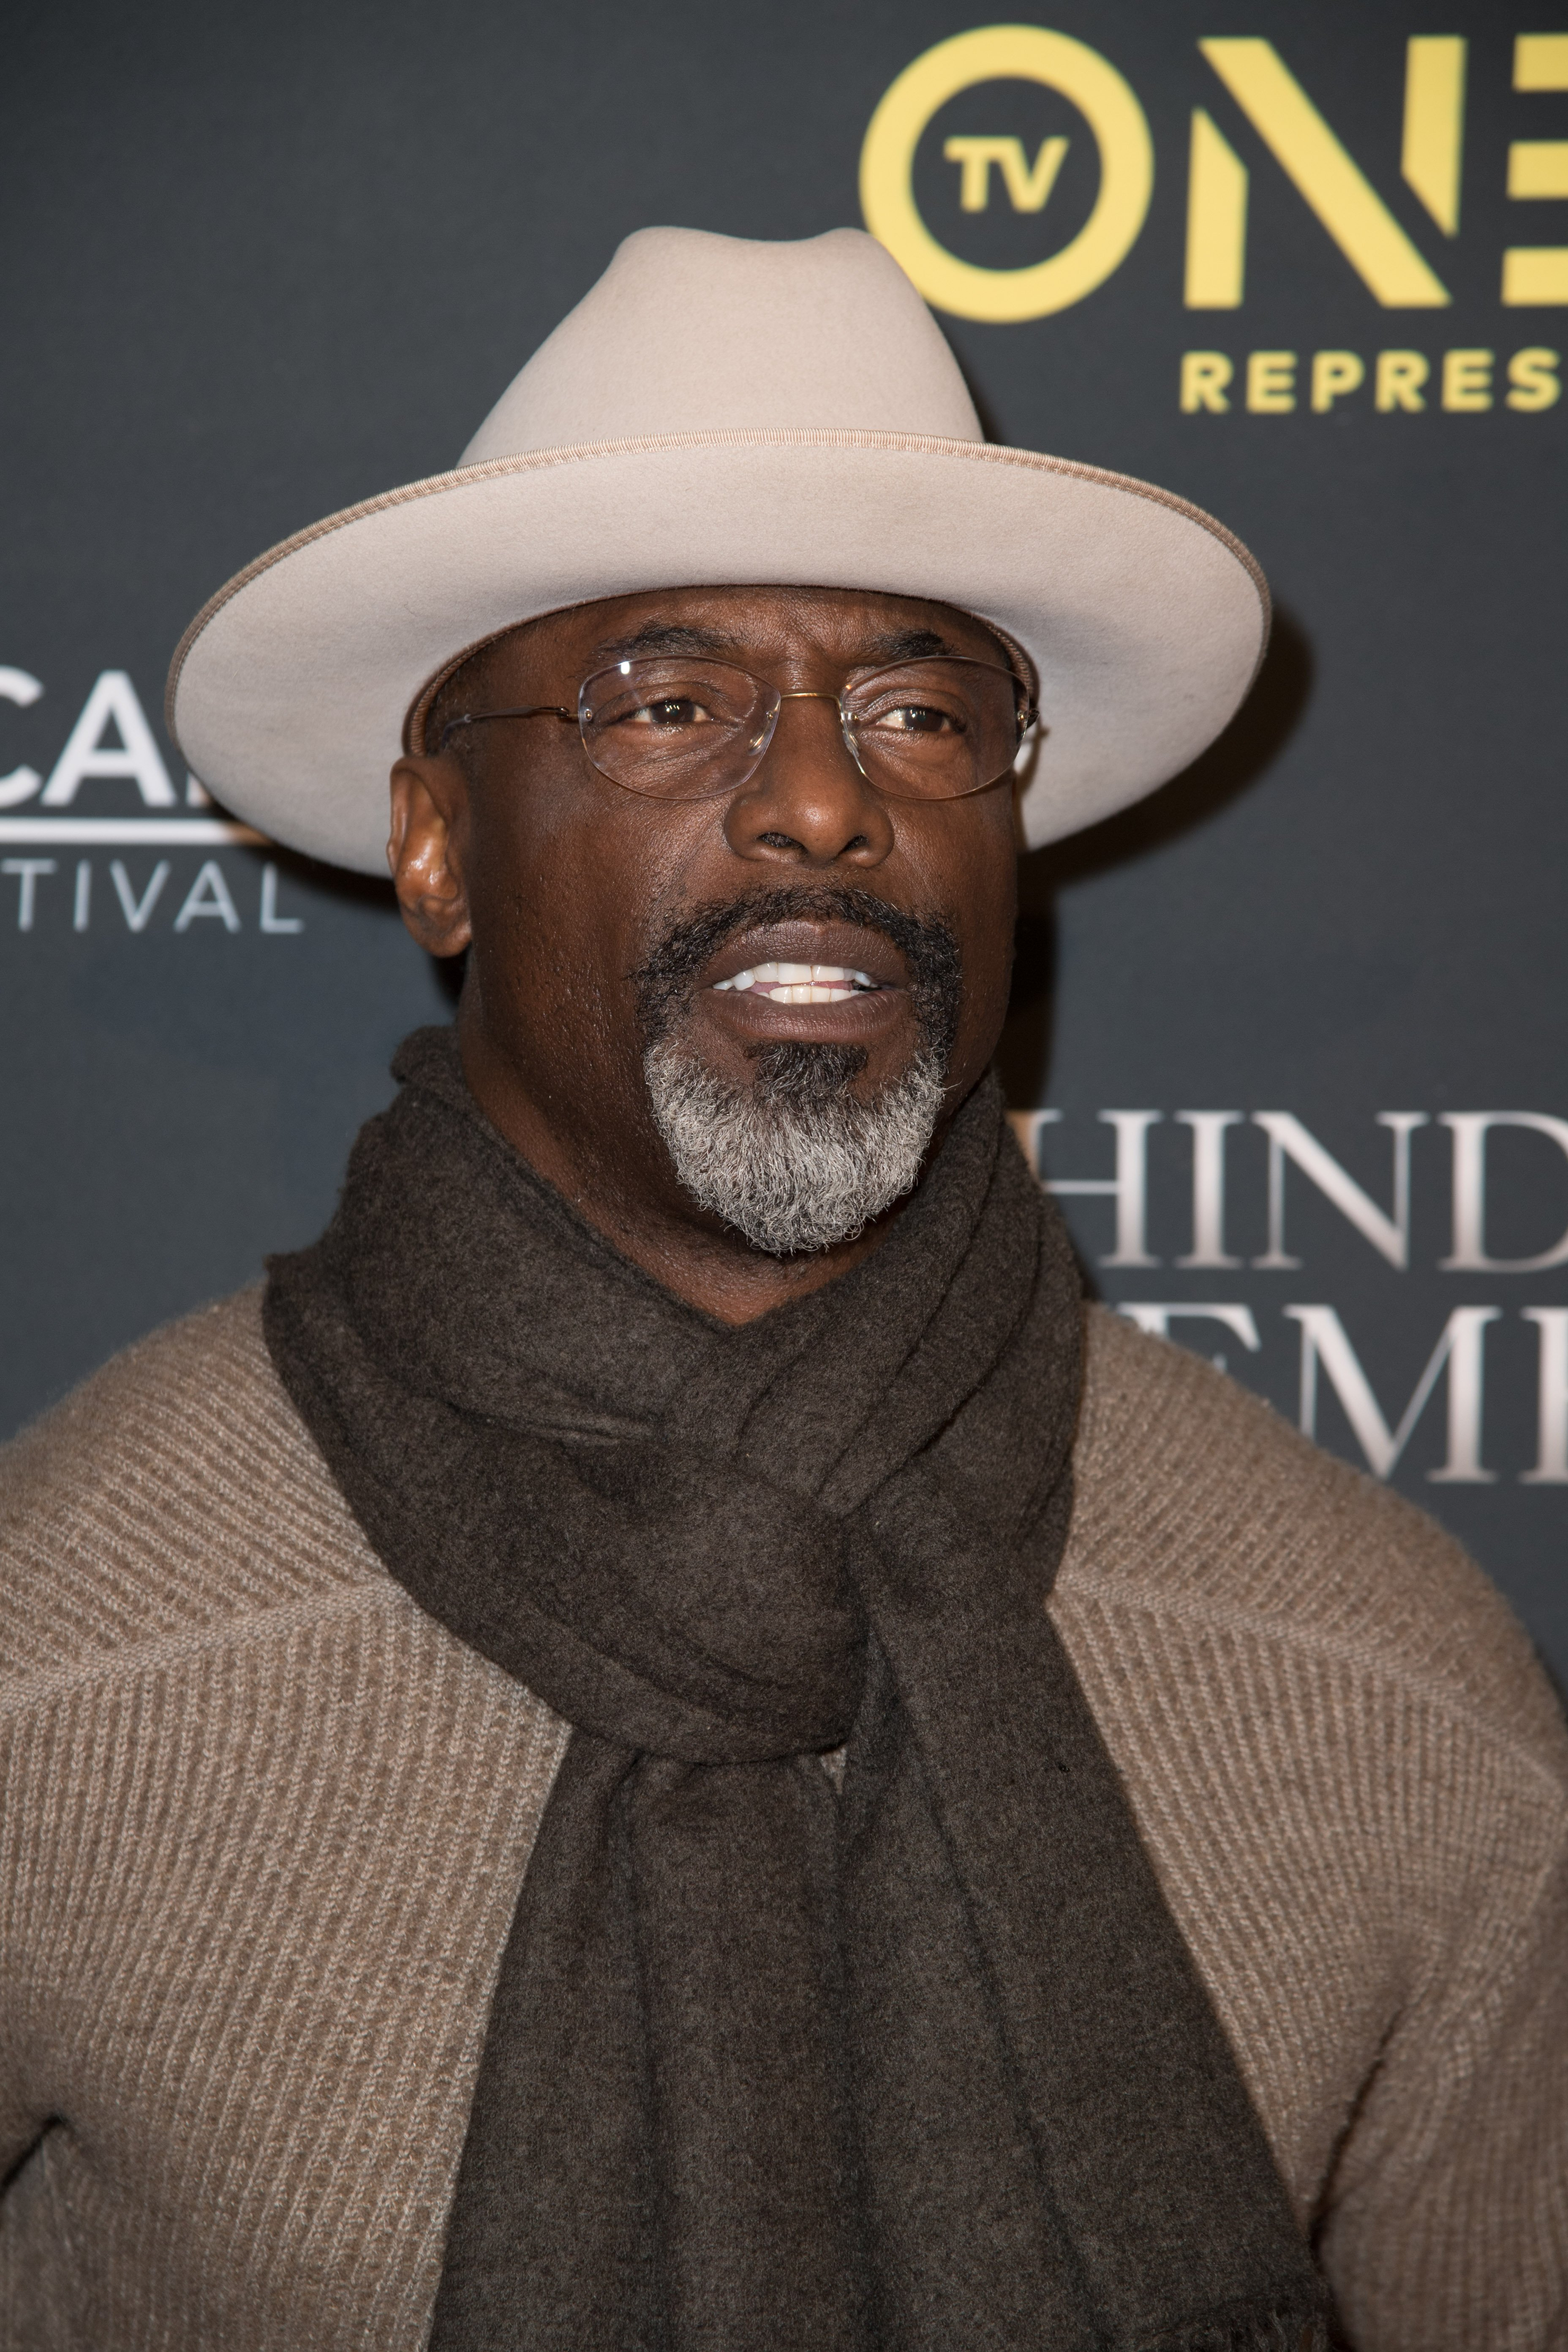 Isaiah Washington at a screening in Los Angeles in February 2018. | Photo: Getty Images